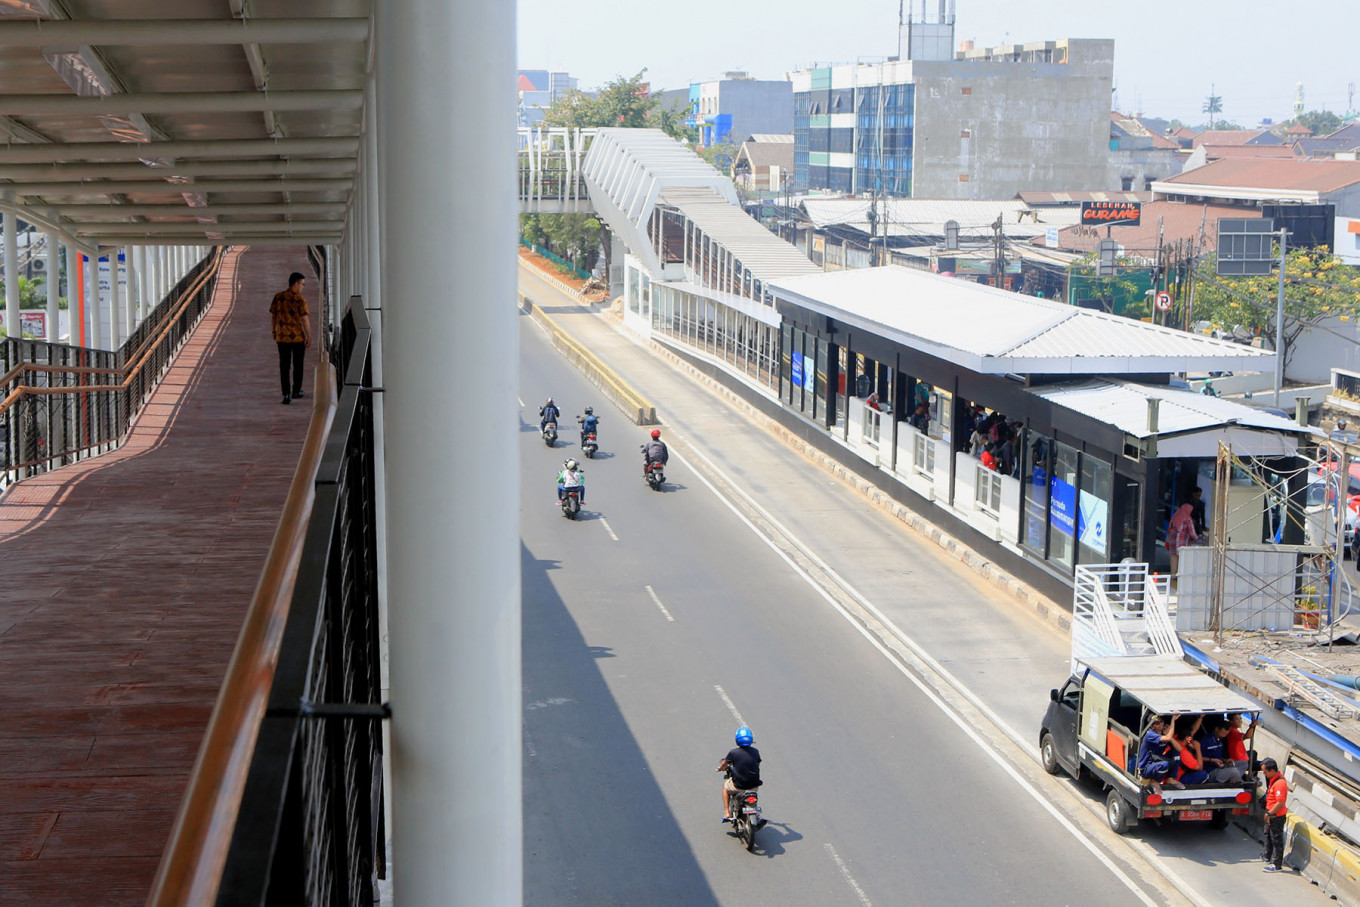 Sky bridge operation aims to boost LRT Jakarta connectivity